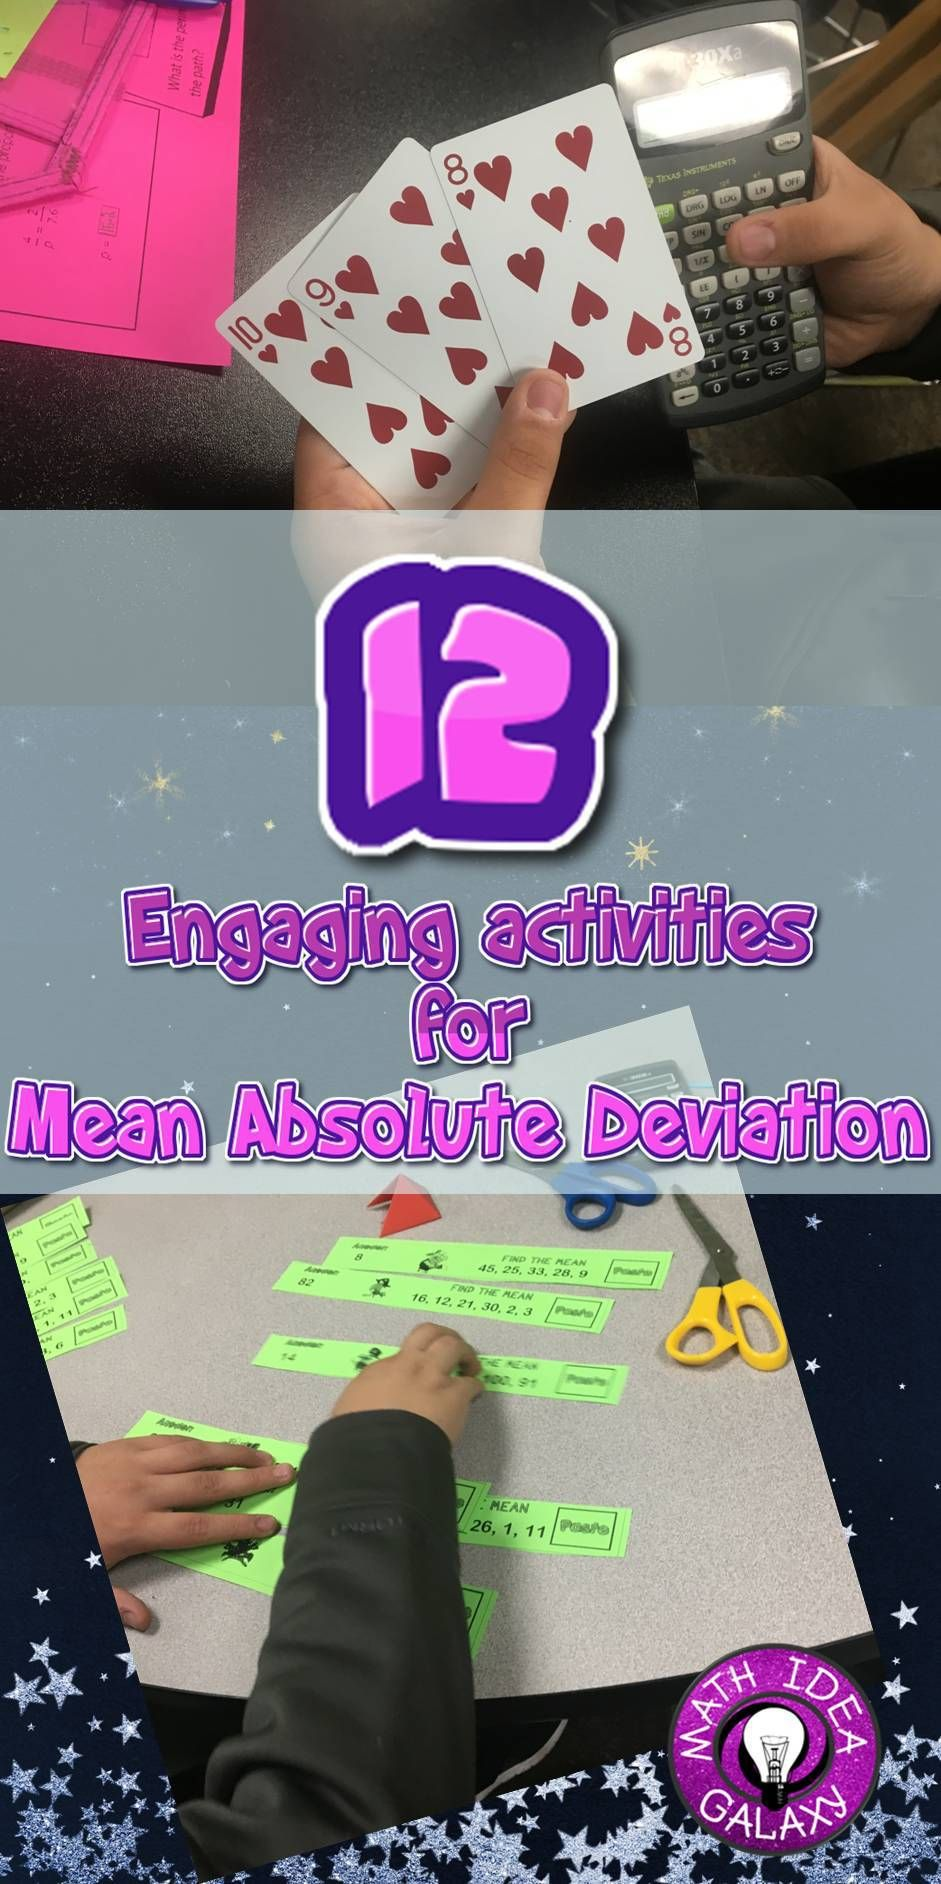 small resolution of 12 Engaging Activities for Mean Absolute Deviation (MAD)   Learn math  online